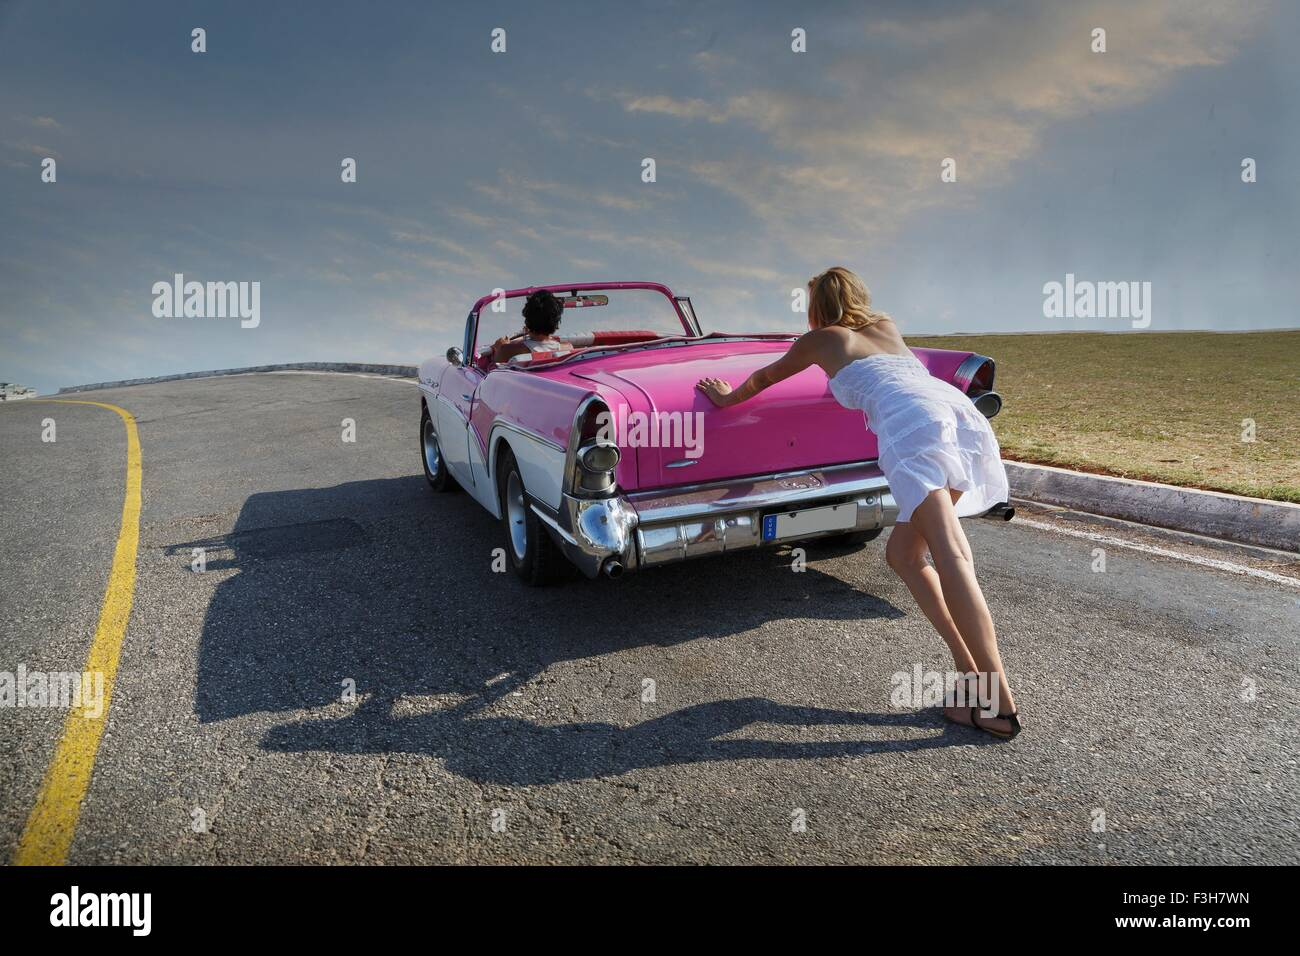 Woman pushing Convertible on road - Stock Image